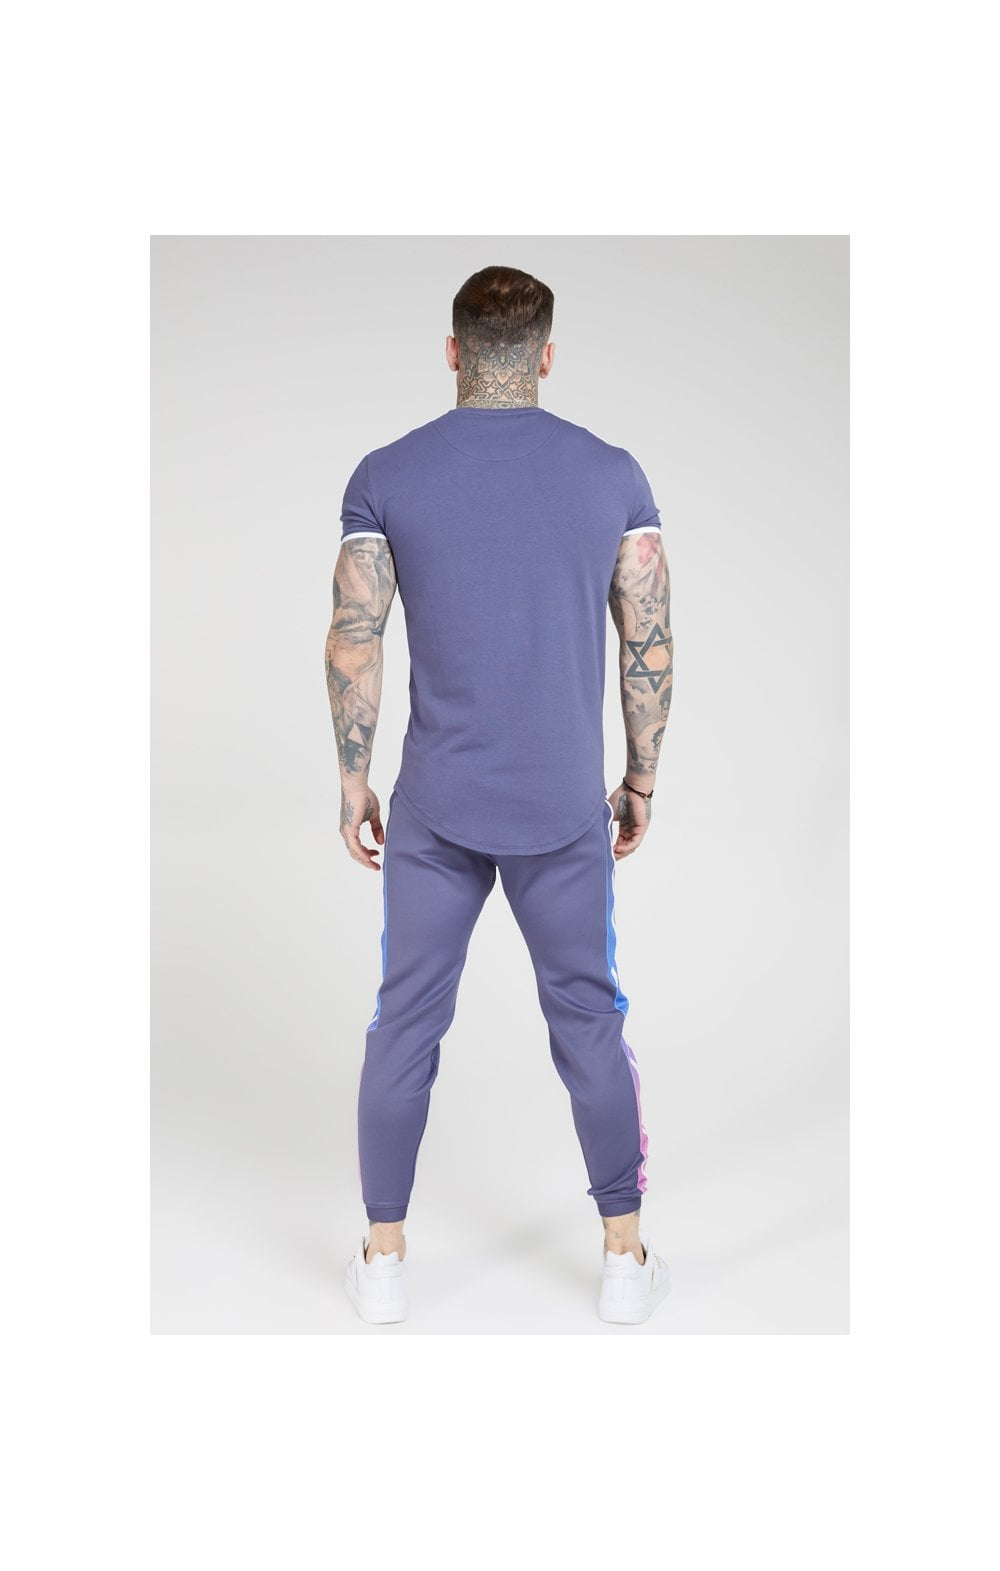 SikSilk Fitted Fade Cuffed Pants – Tri-Neon Fade (5)